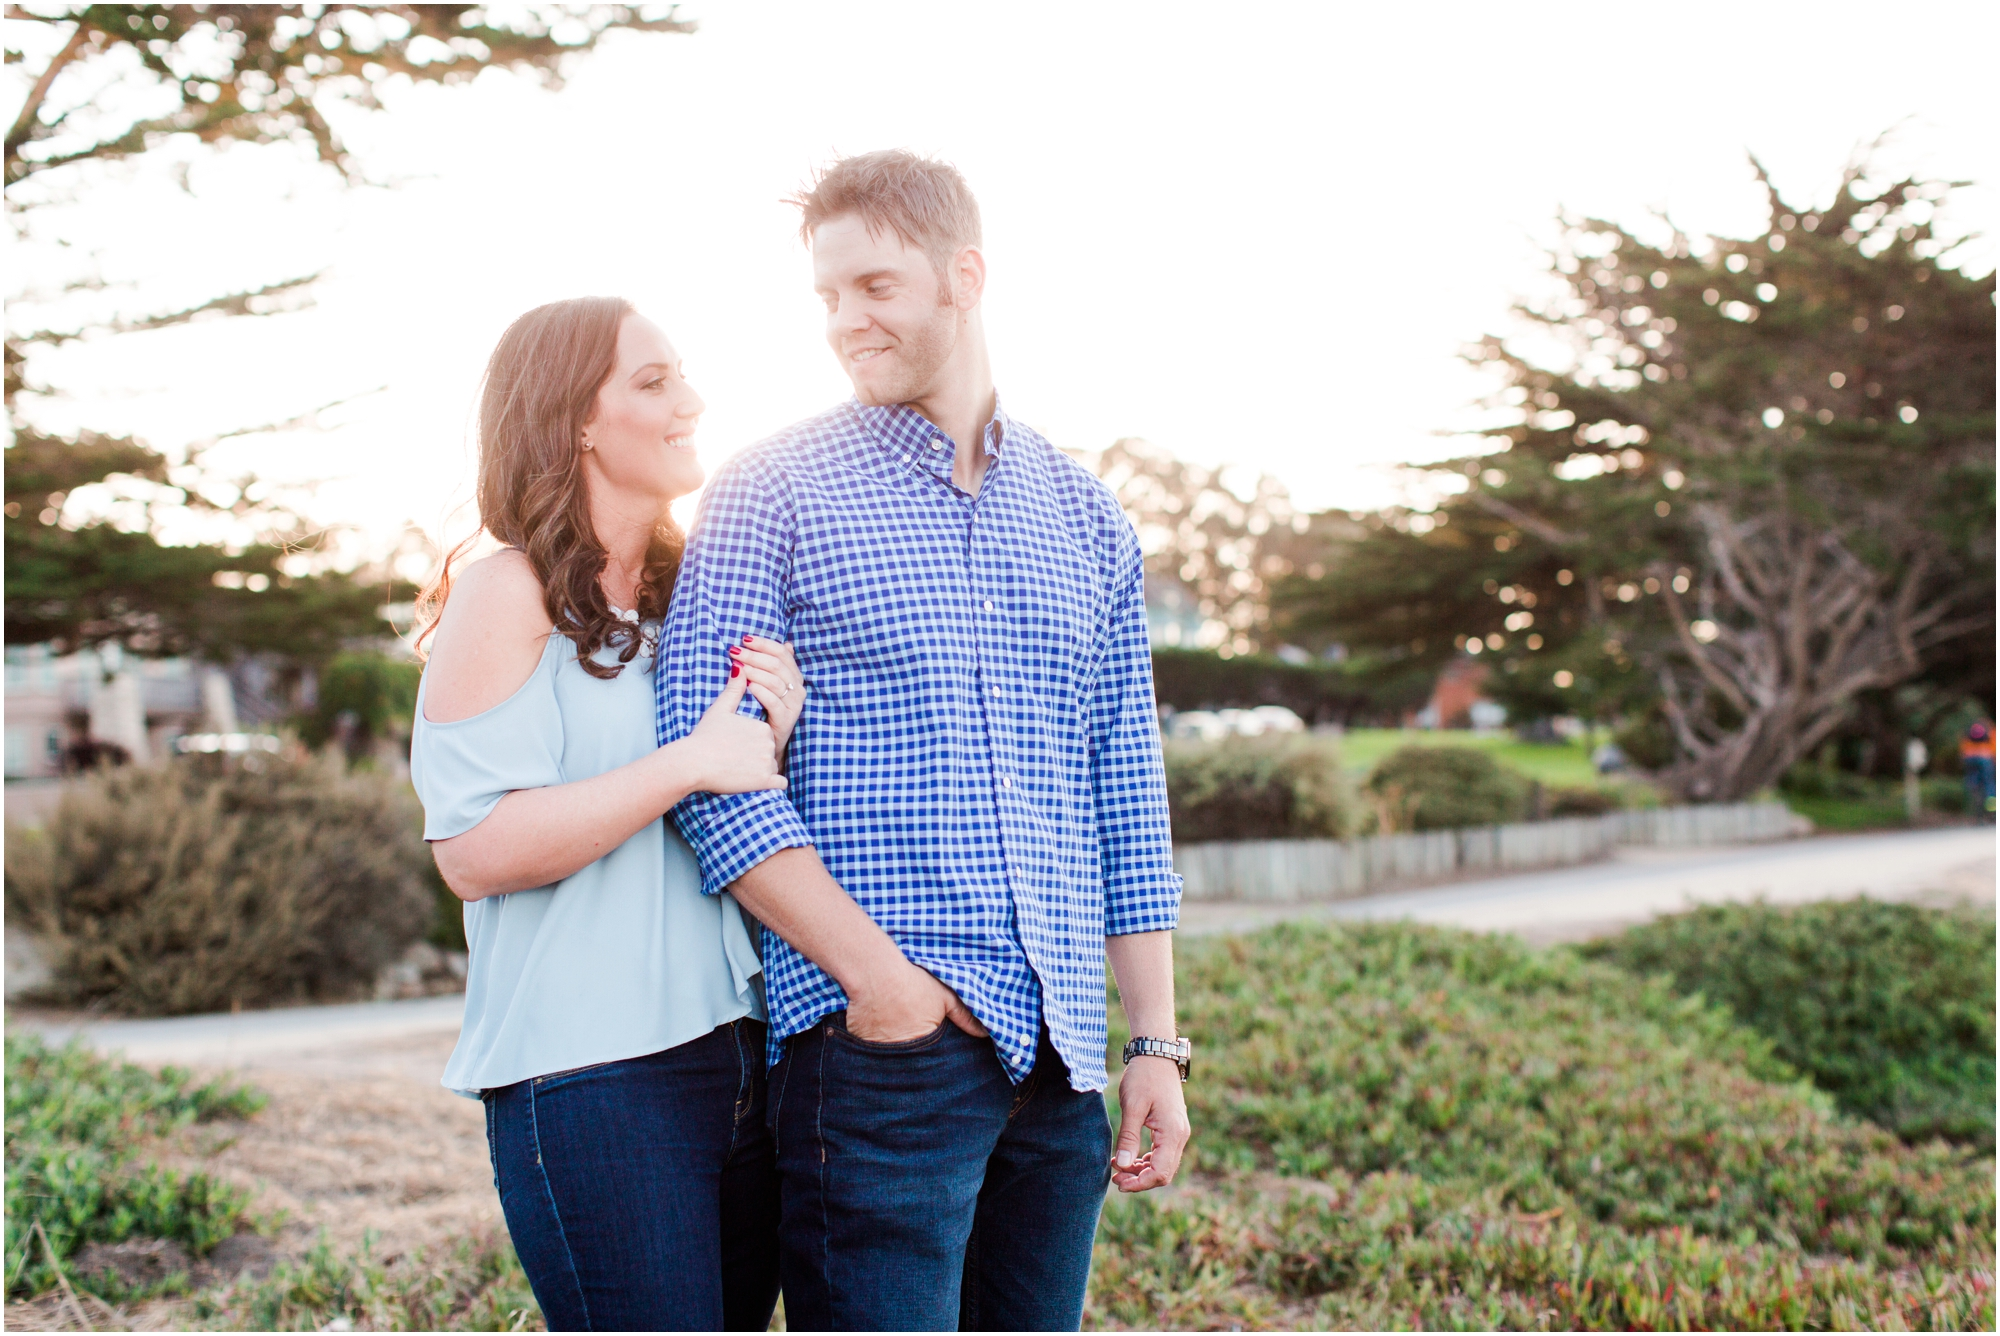 Berwick Park Monterey engagement pictures by Briana Calderon Photography_2397.jpg